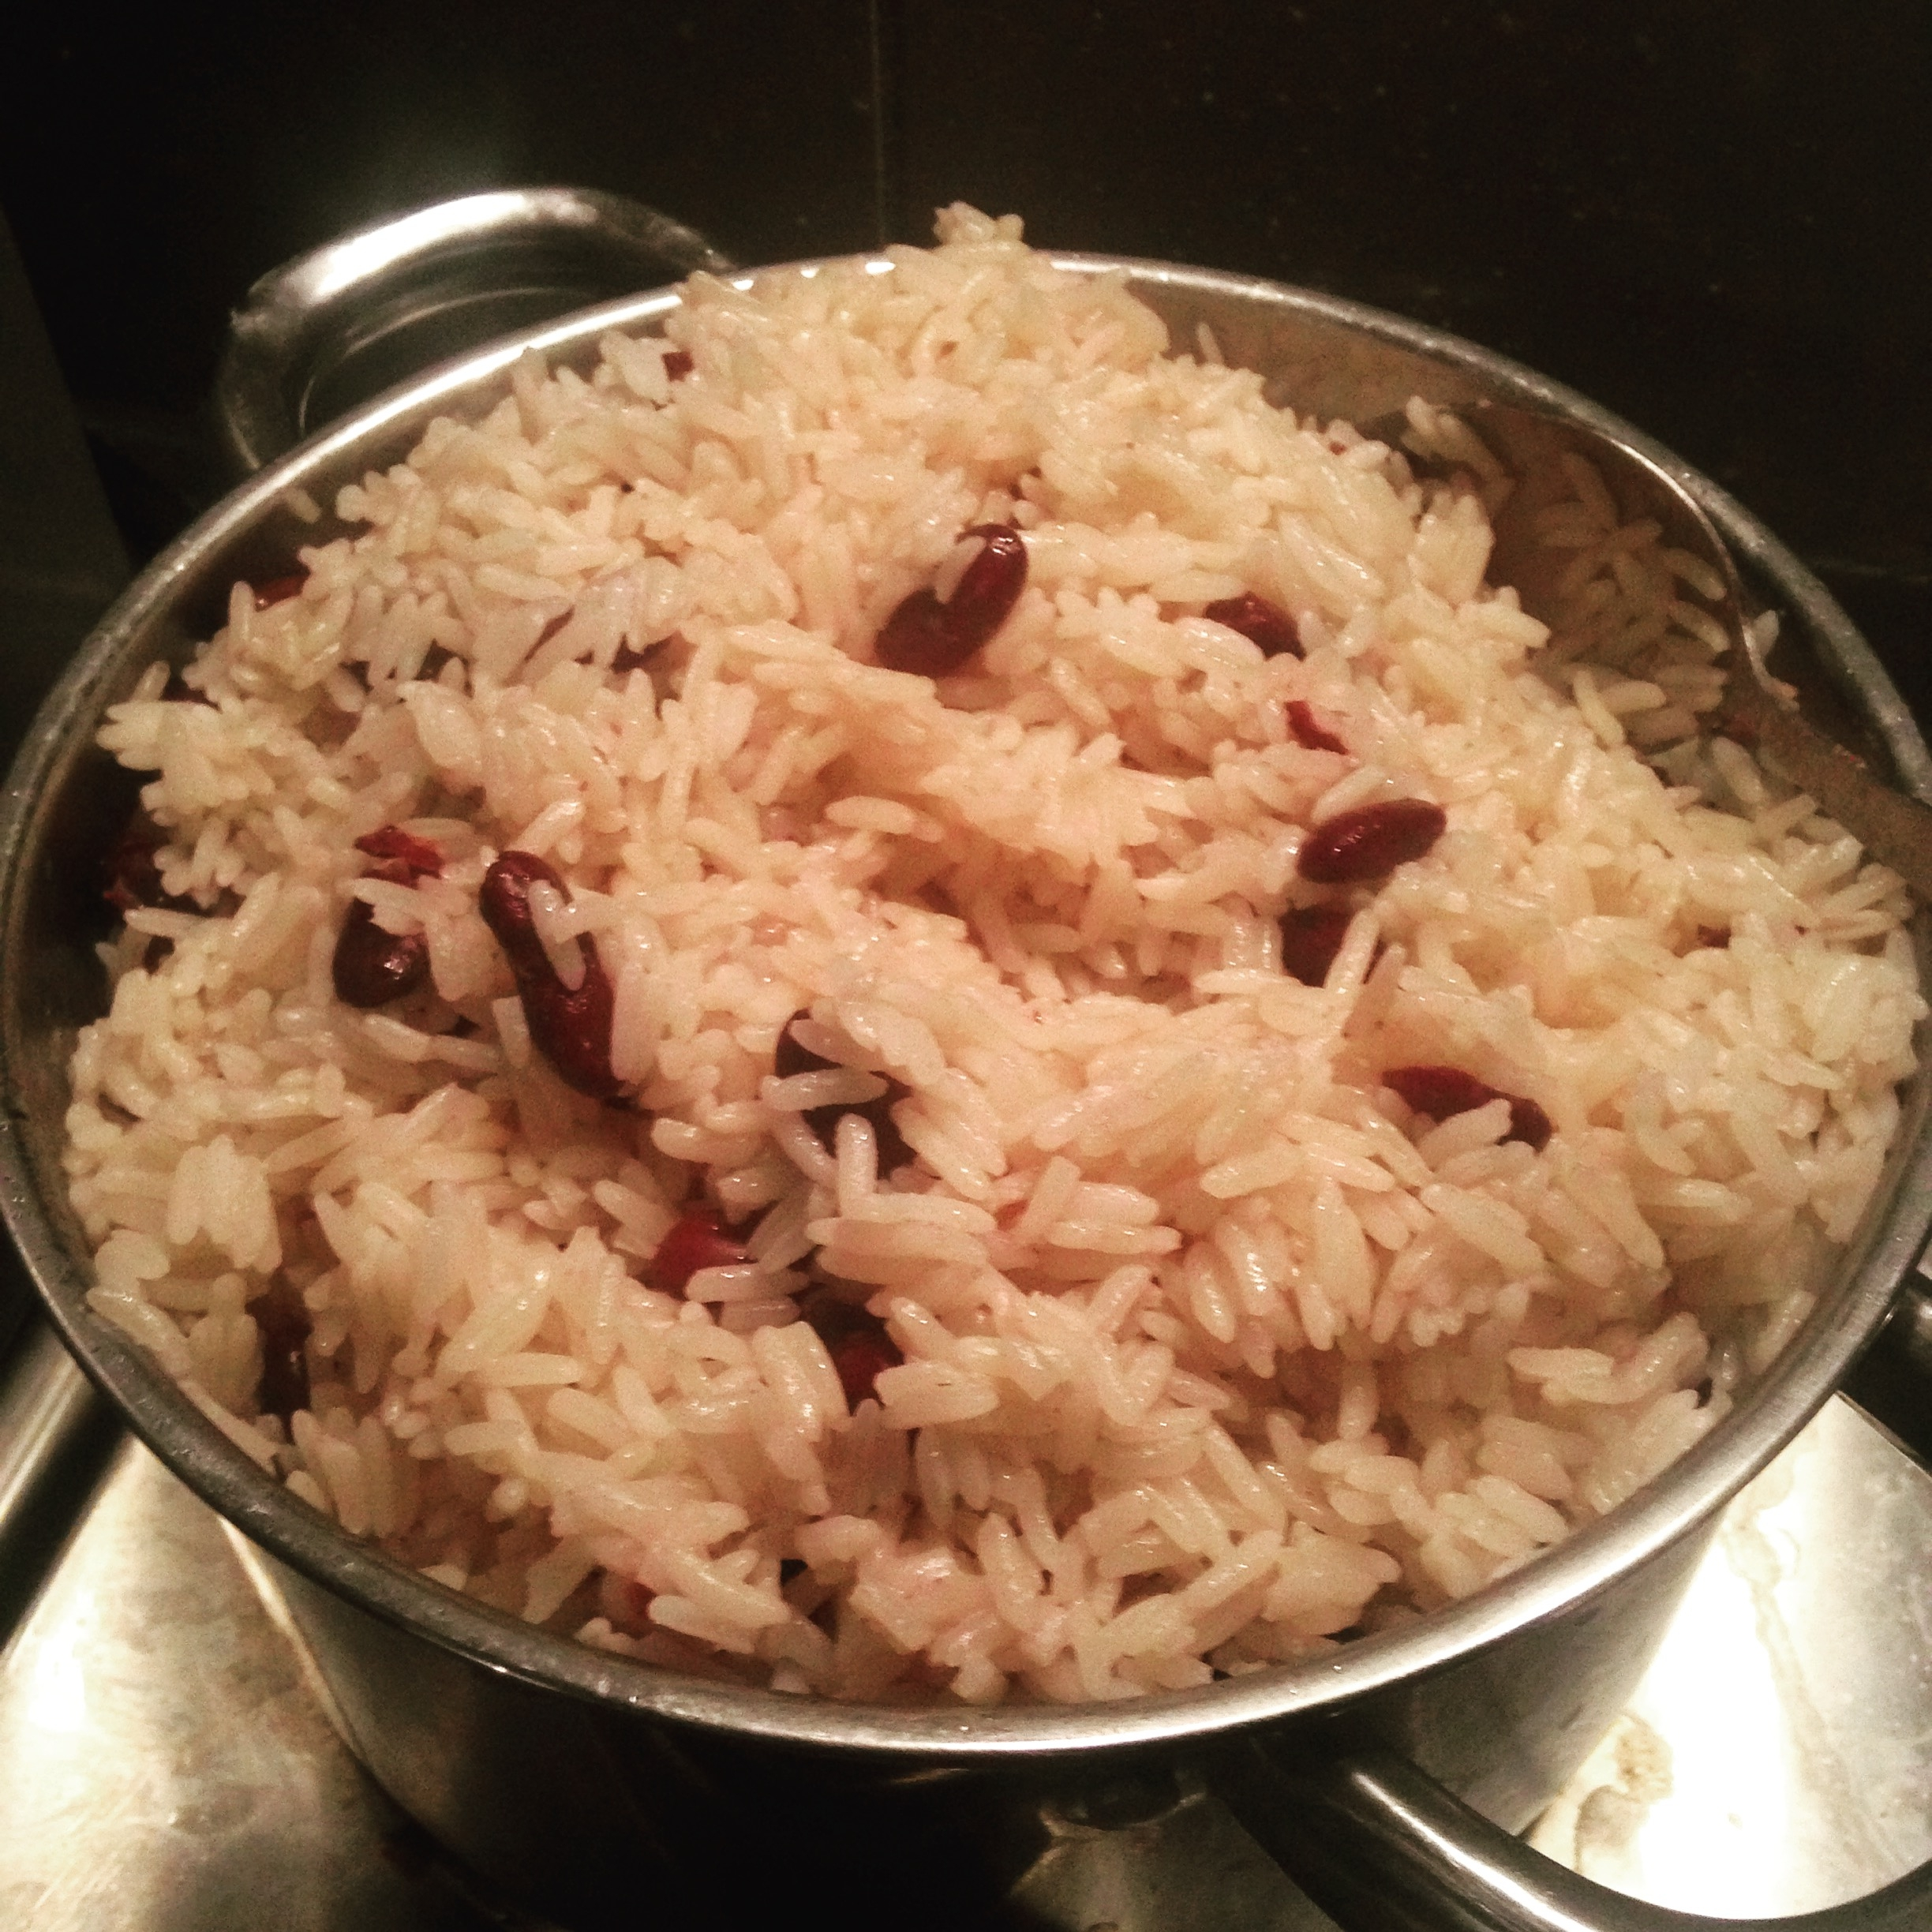 Caribbean flavor. One day I up and made Jamaican rice and peas here in Namibia!